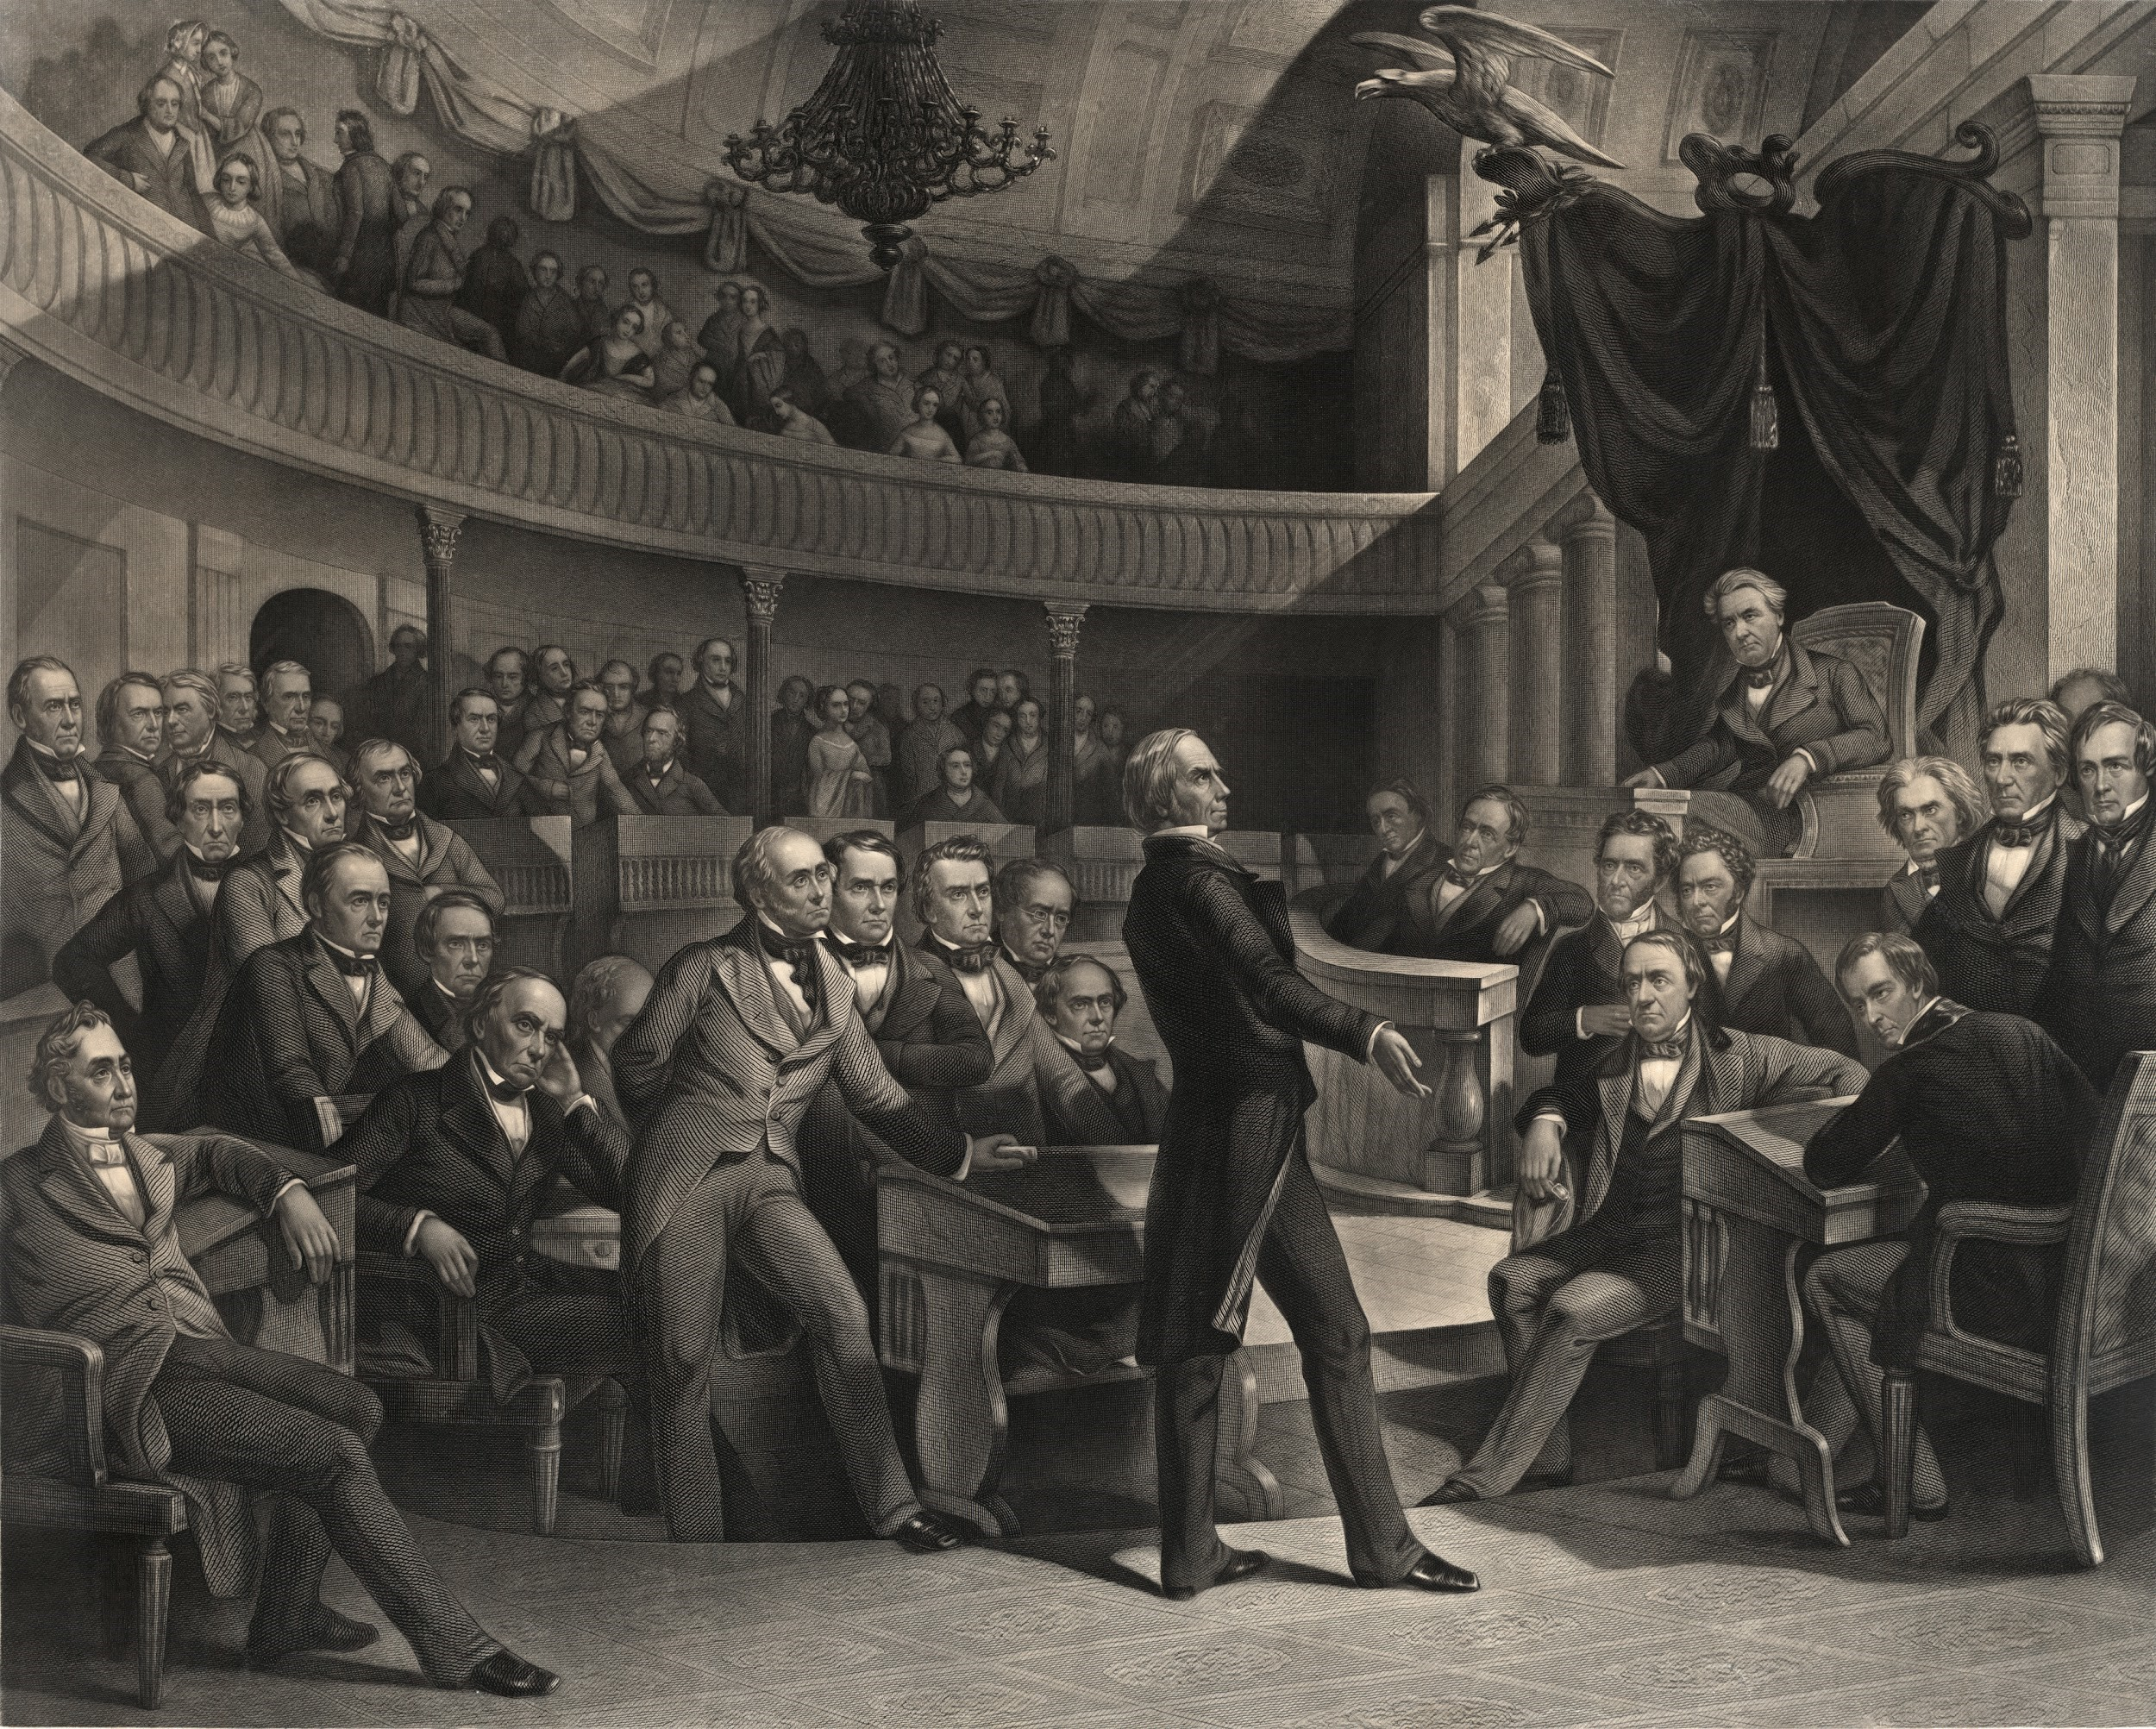 An imagined depiction of the Senate debate over Henry Clay's proposed compromise, done by P. F. Rothemel. Clay stands in the center of the chamber, addressing the Senate. Rothemel included other notable figures in the scene: Daniel Webster of Massachusetts is seated to Clay's left, while John C. Calhoun of South Carolina is seated to the left of the Speaker's chair, occupied by Vice President Millard Filmore.